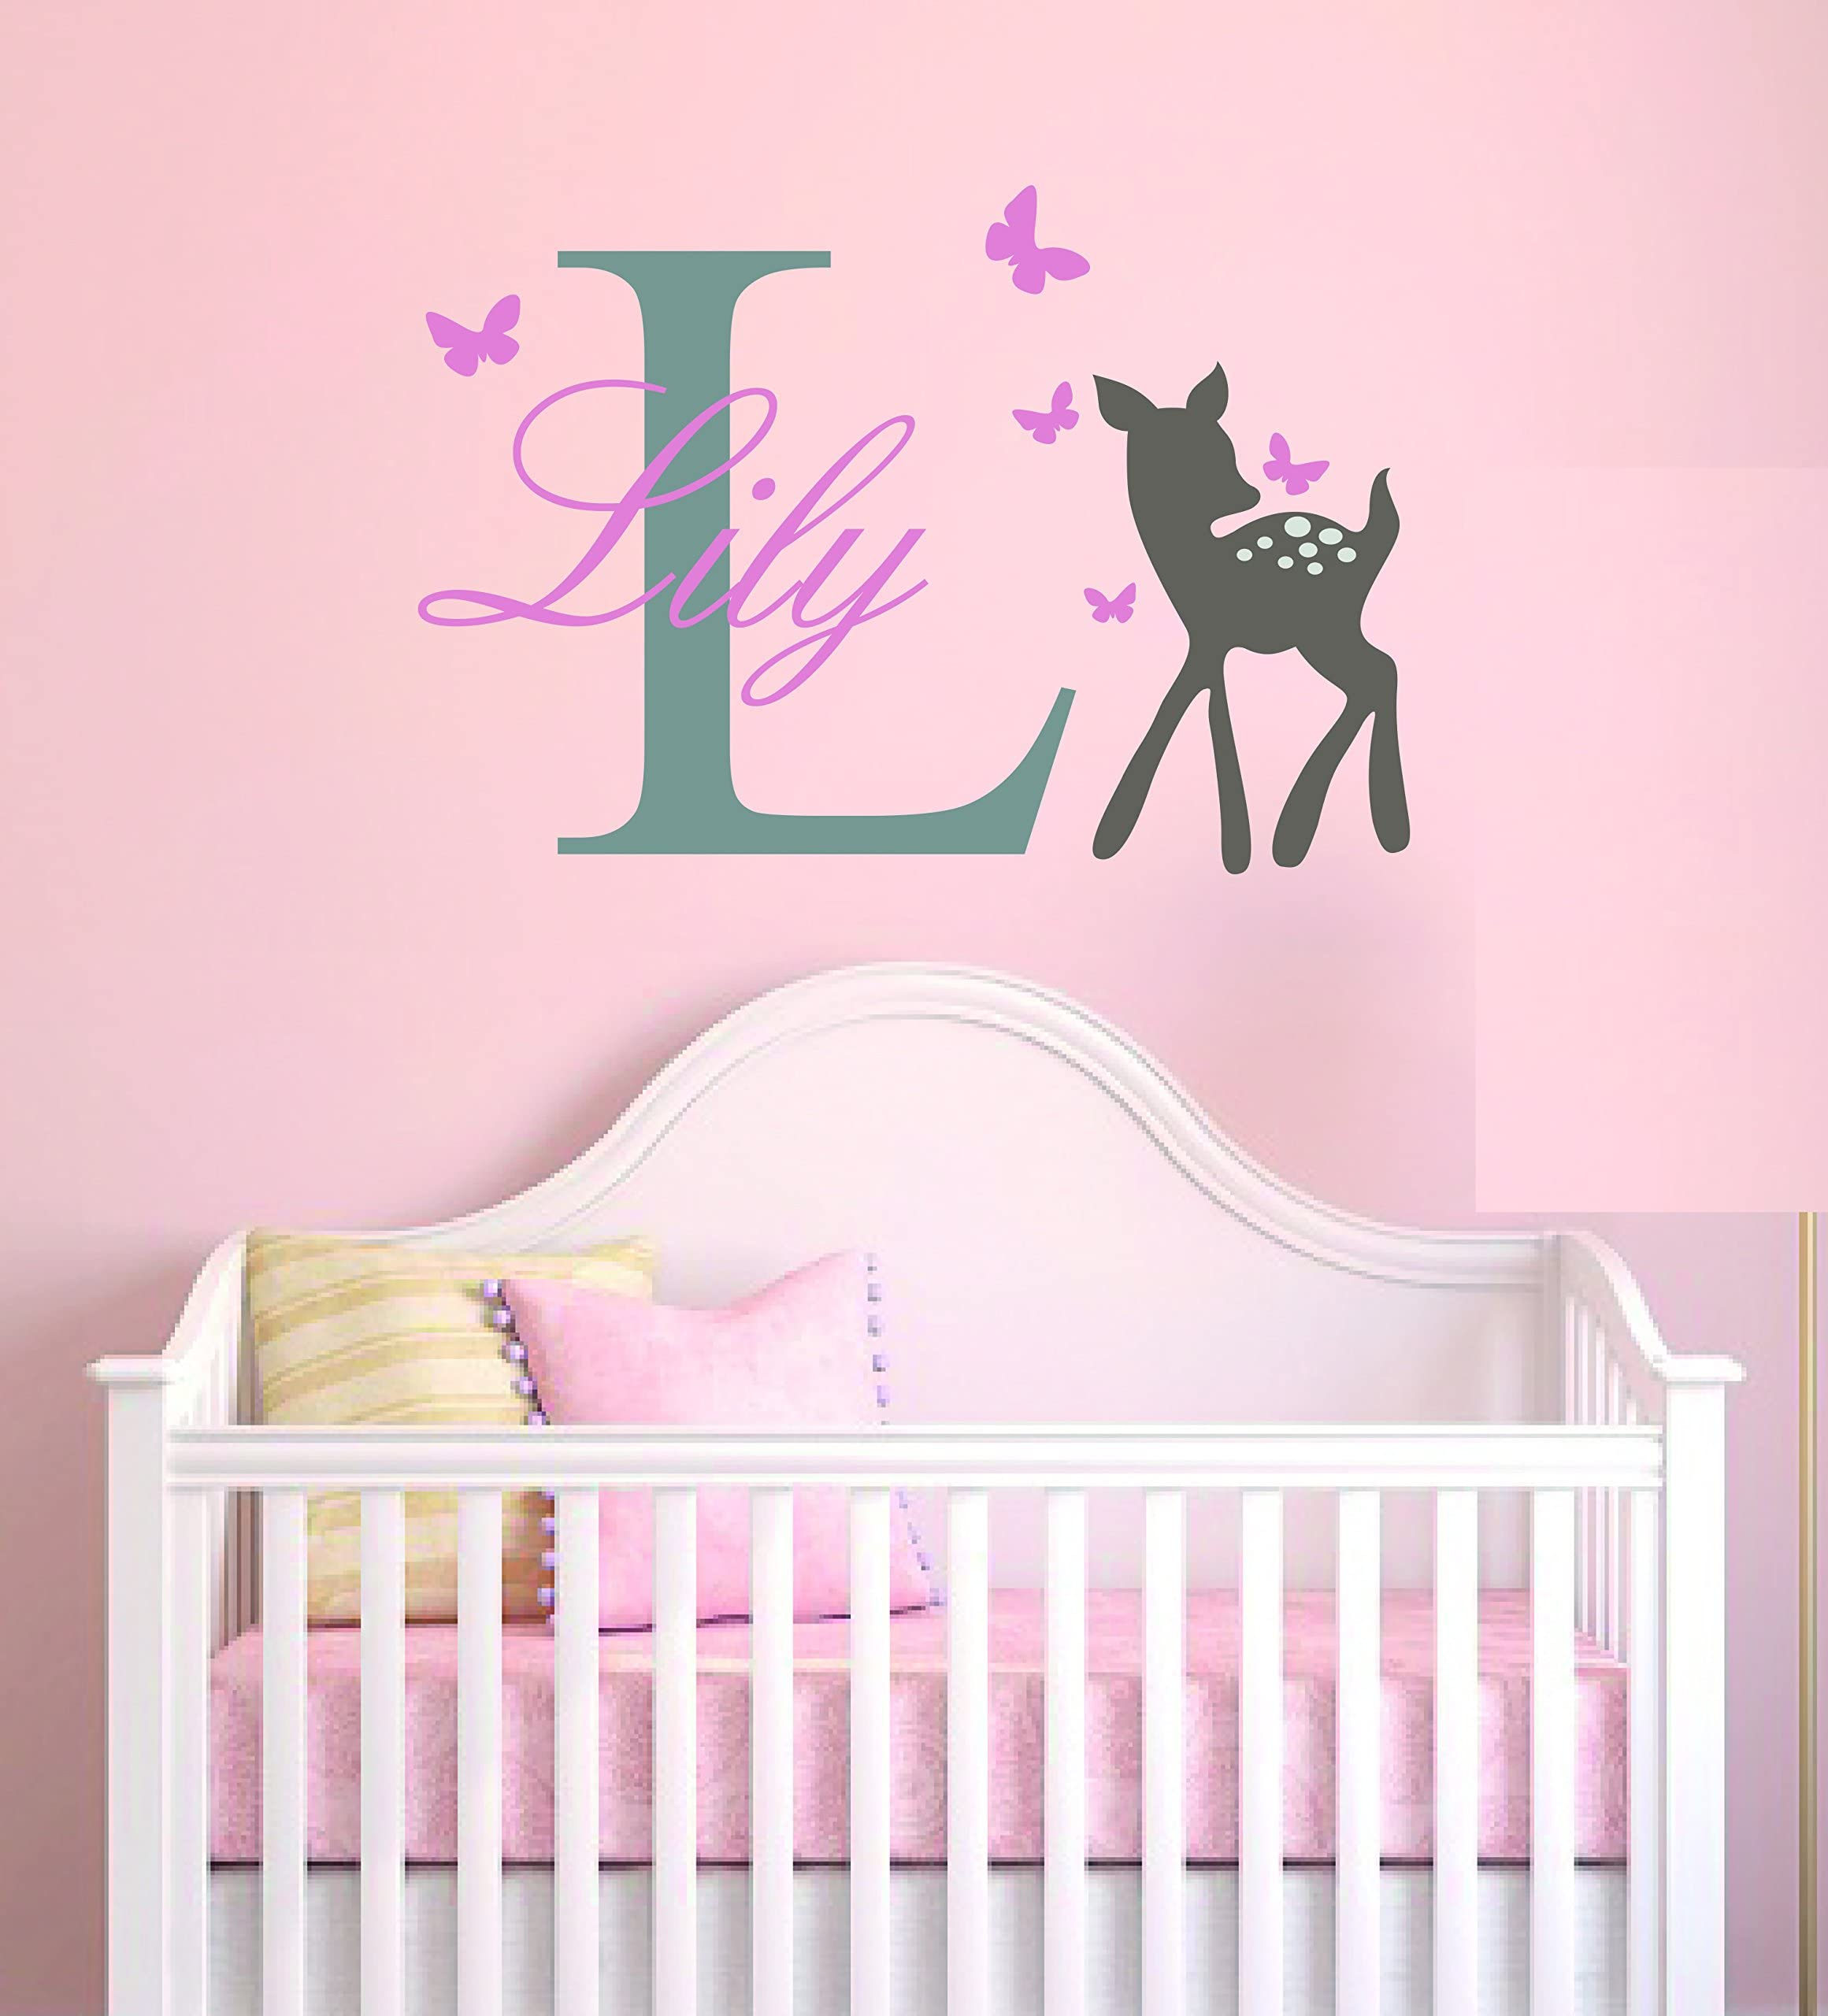 Baby Fawn Wall Decal 29.4 Wide x 26.6 Tall